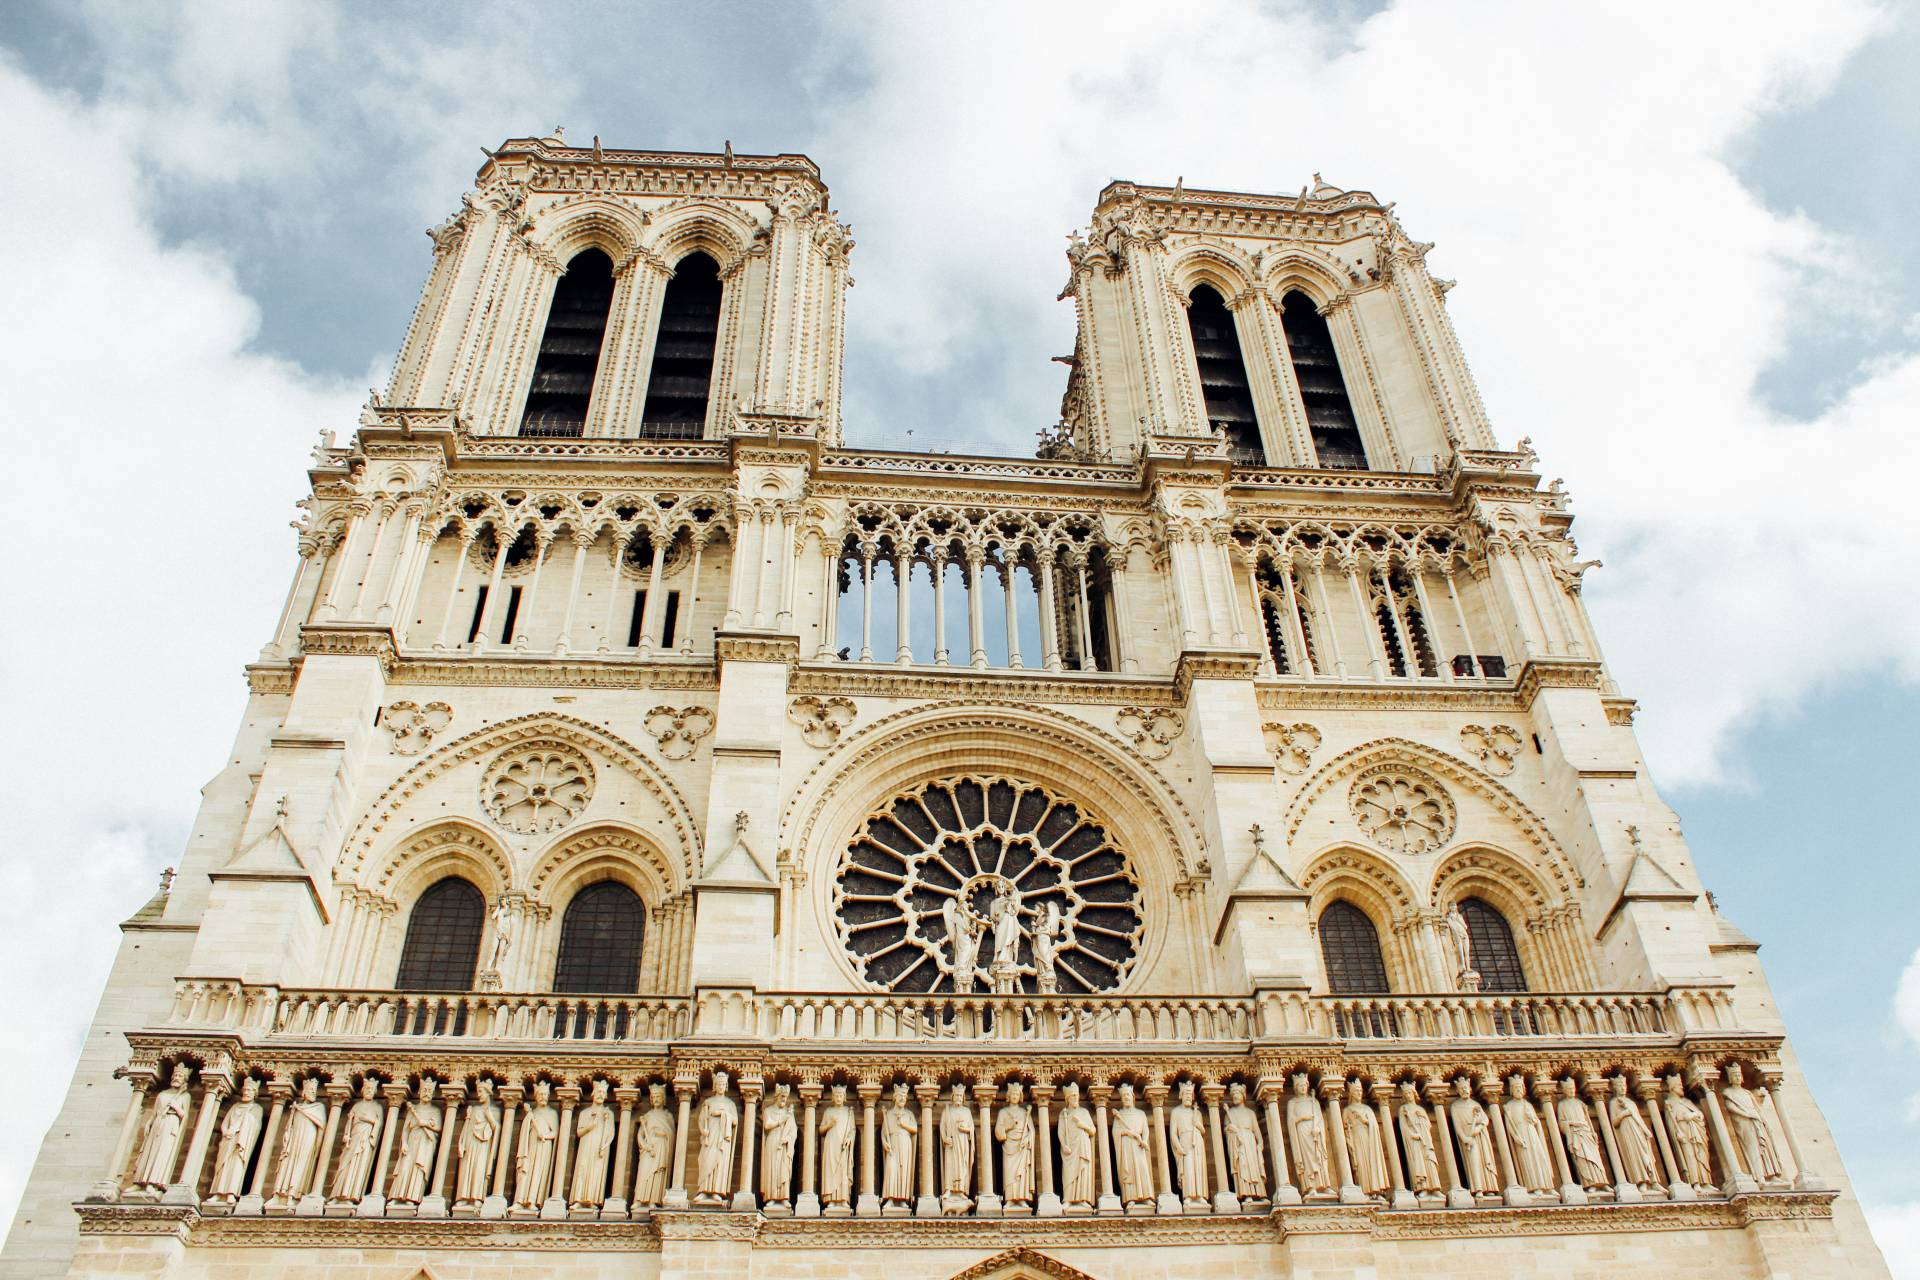 The Facade of the Notre Dame Cathedral, Paris, France